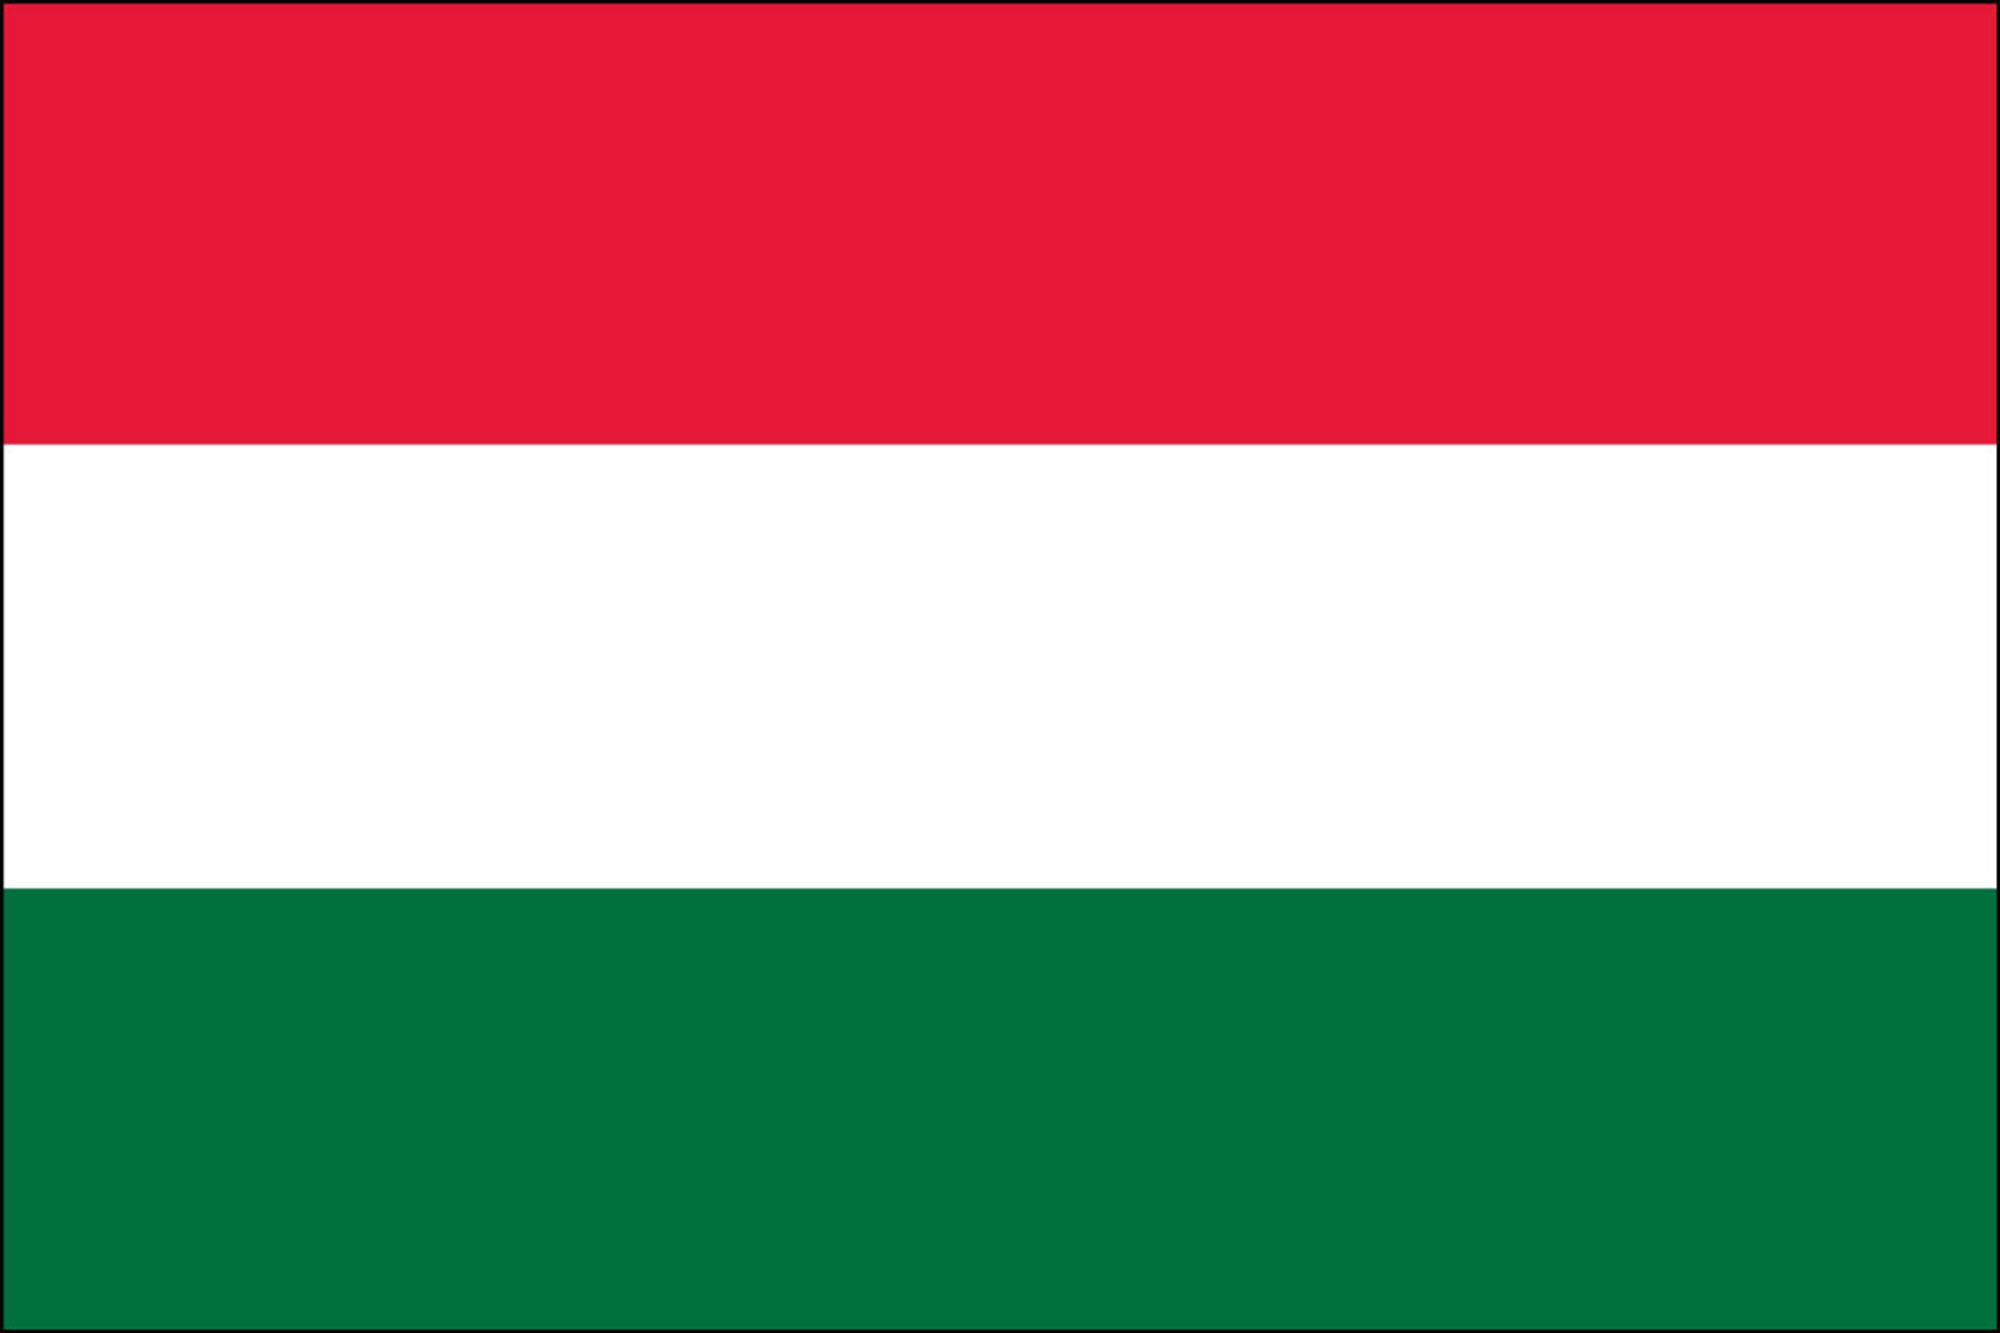 Hungary Flags